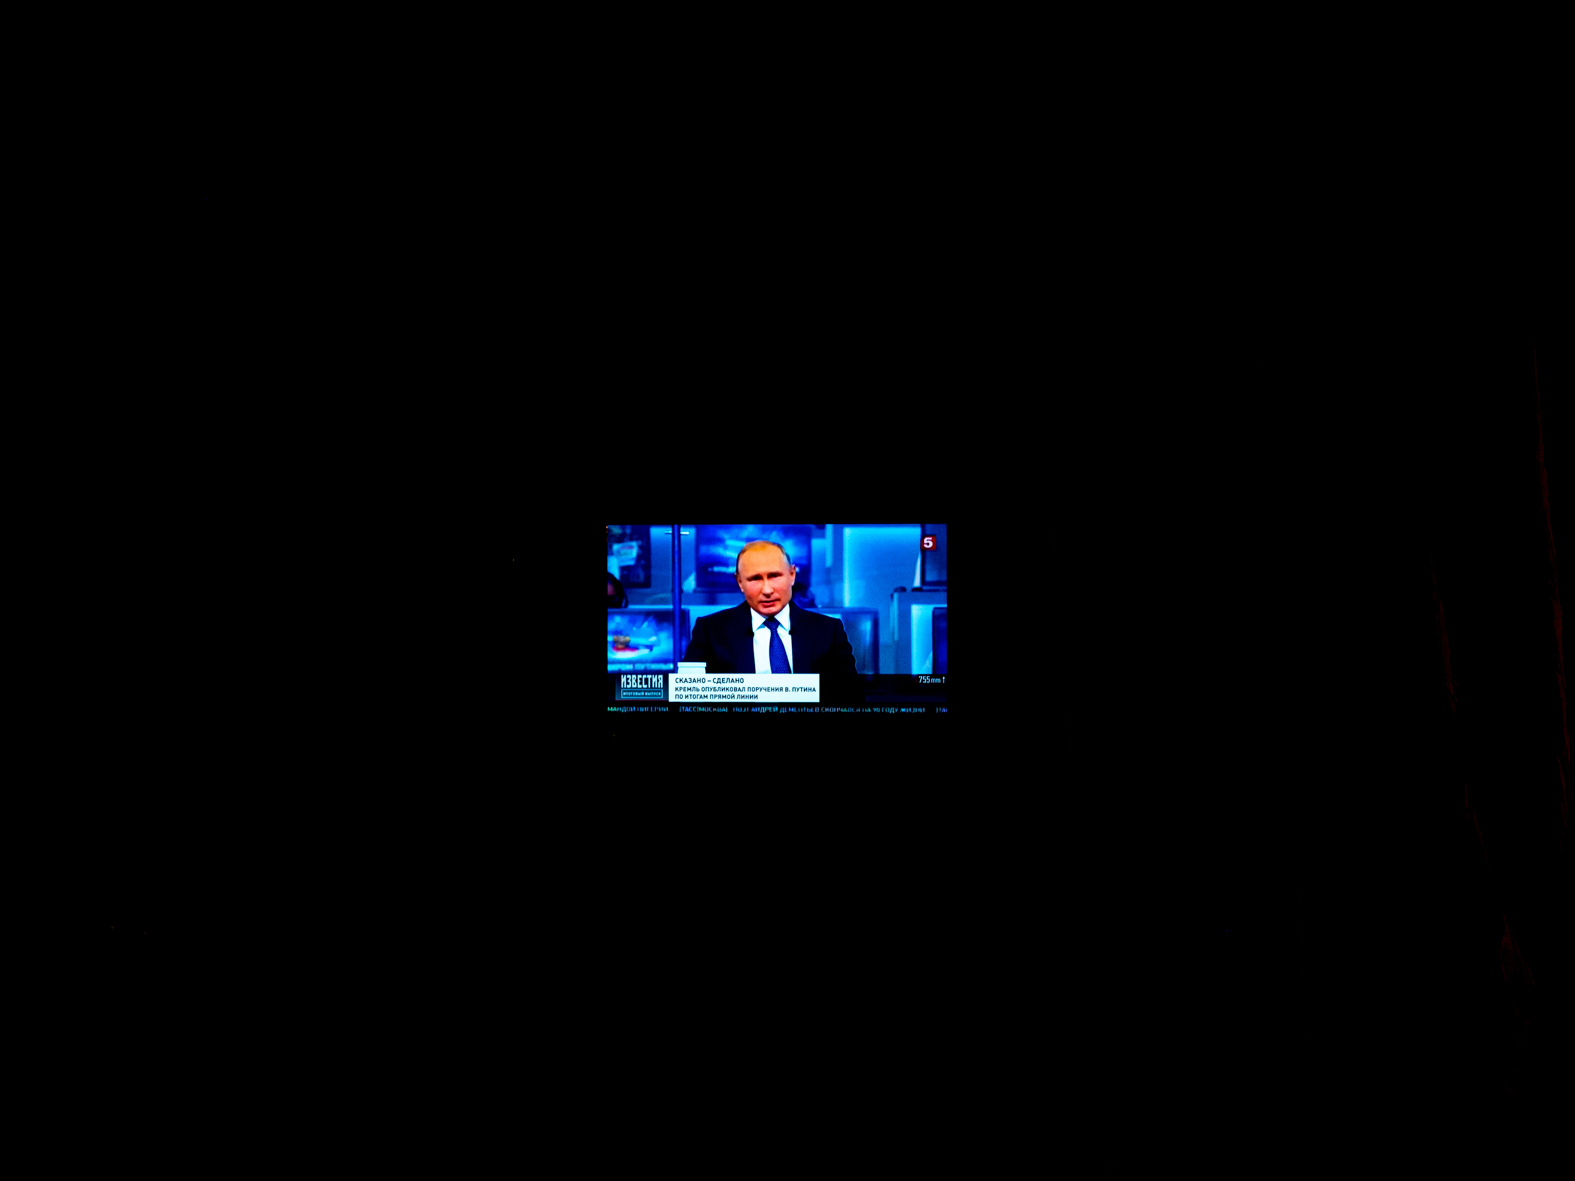 Putin addressing the nation on TV.Vladimir Vladimirovich Putin is a Russian statesman and former intelligence officer serving as President of Russia since 2012, previously holding the position from 2000 until 2008.The 21st FIFA World Cup football tournament took place in Russia in 2018. It was the first World Cup to be held in Eastern Europe and the eleventh time that it has been held in Europe. For the first time the tournament took place on two continents – Europe and Asia. All but two of the stadium venues were in European Russia.